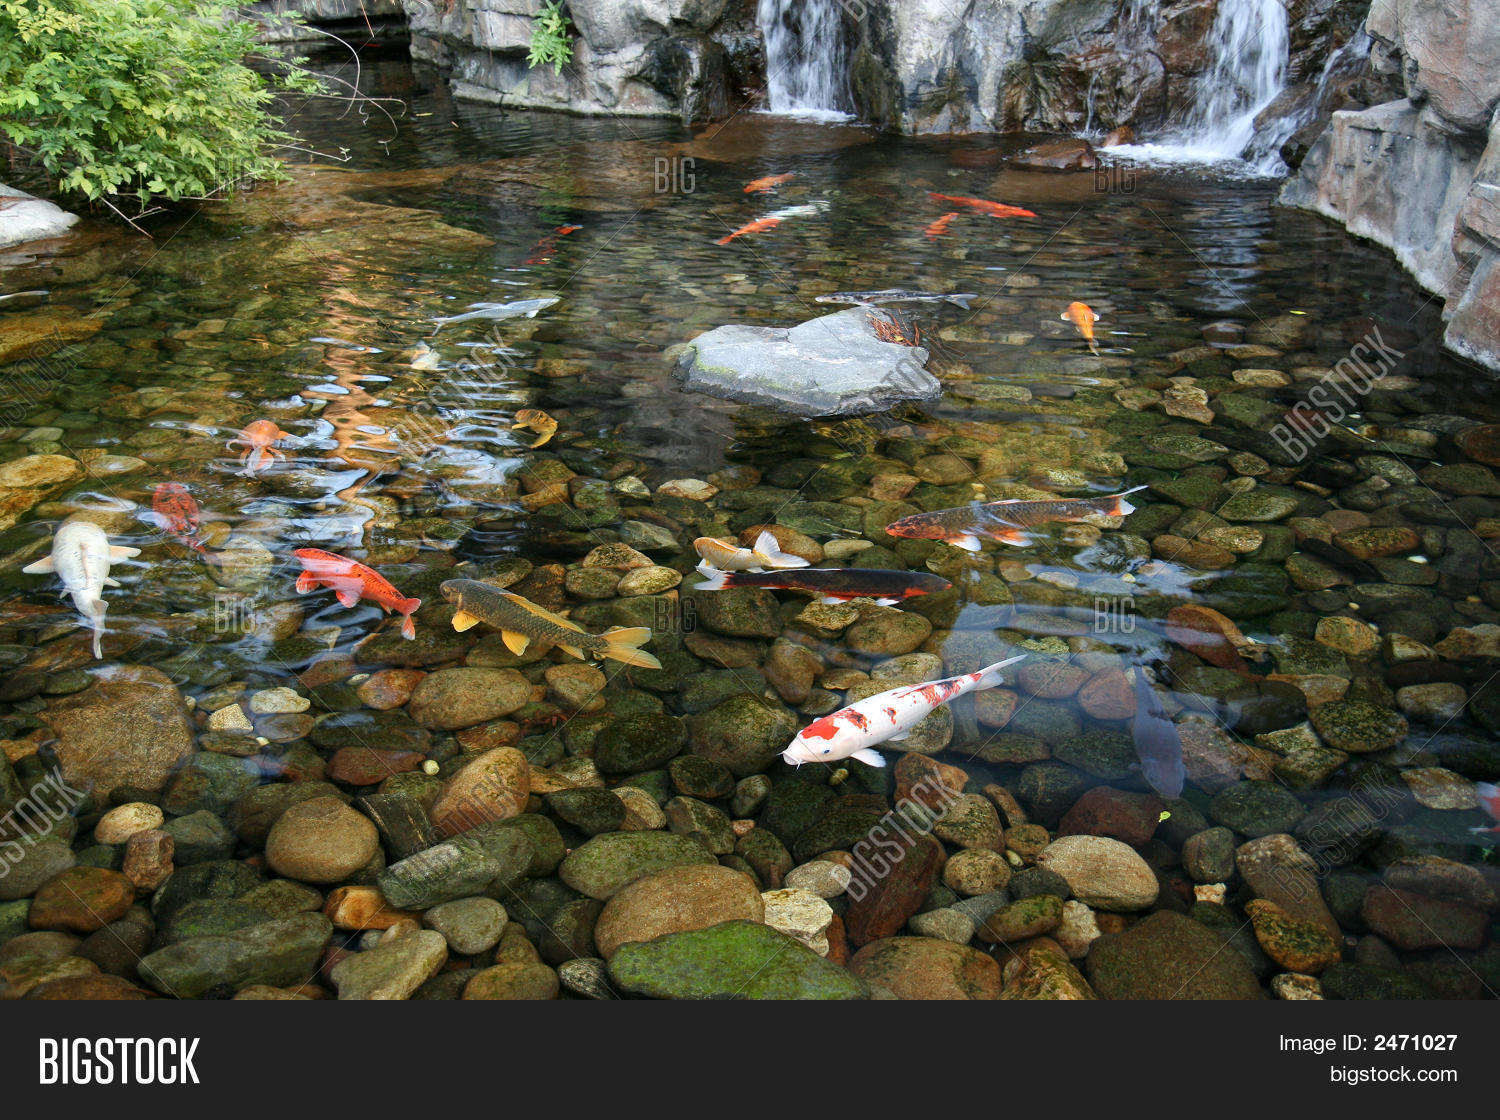 Japanese koi fish pond image photo bigstock for Koi pond supply of japan